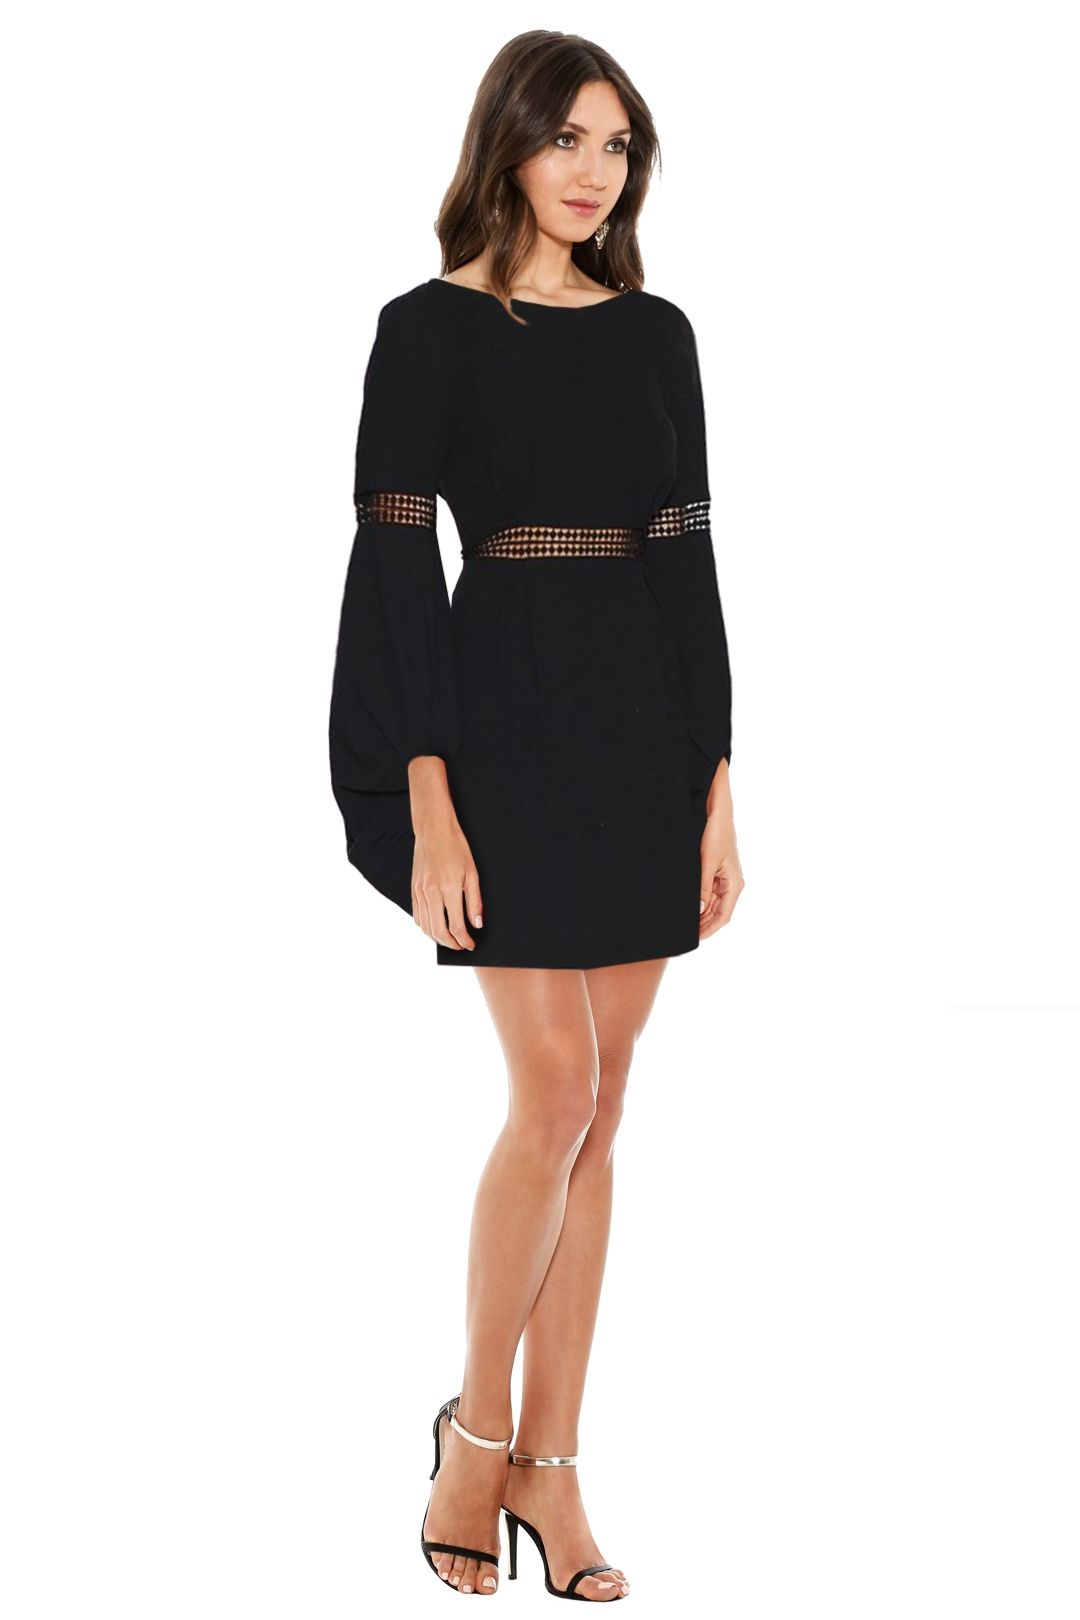 Ministry of Style - Fleeting Dress - Black - Side